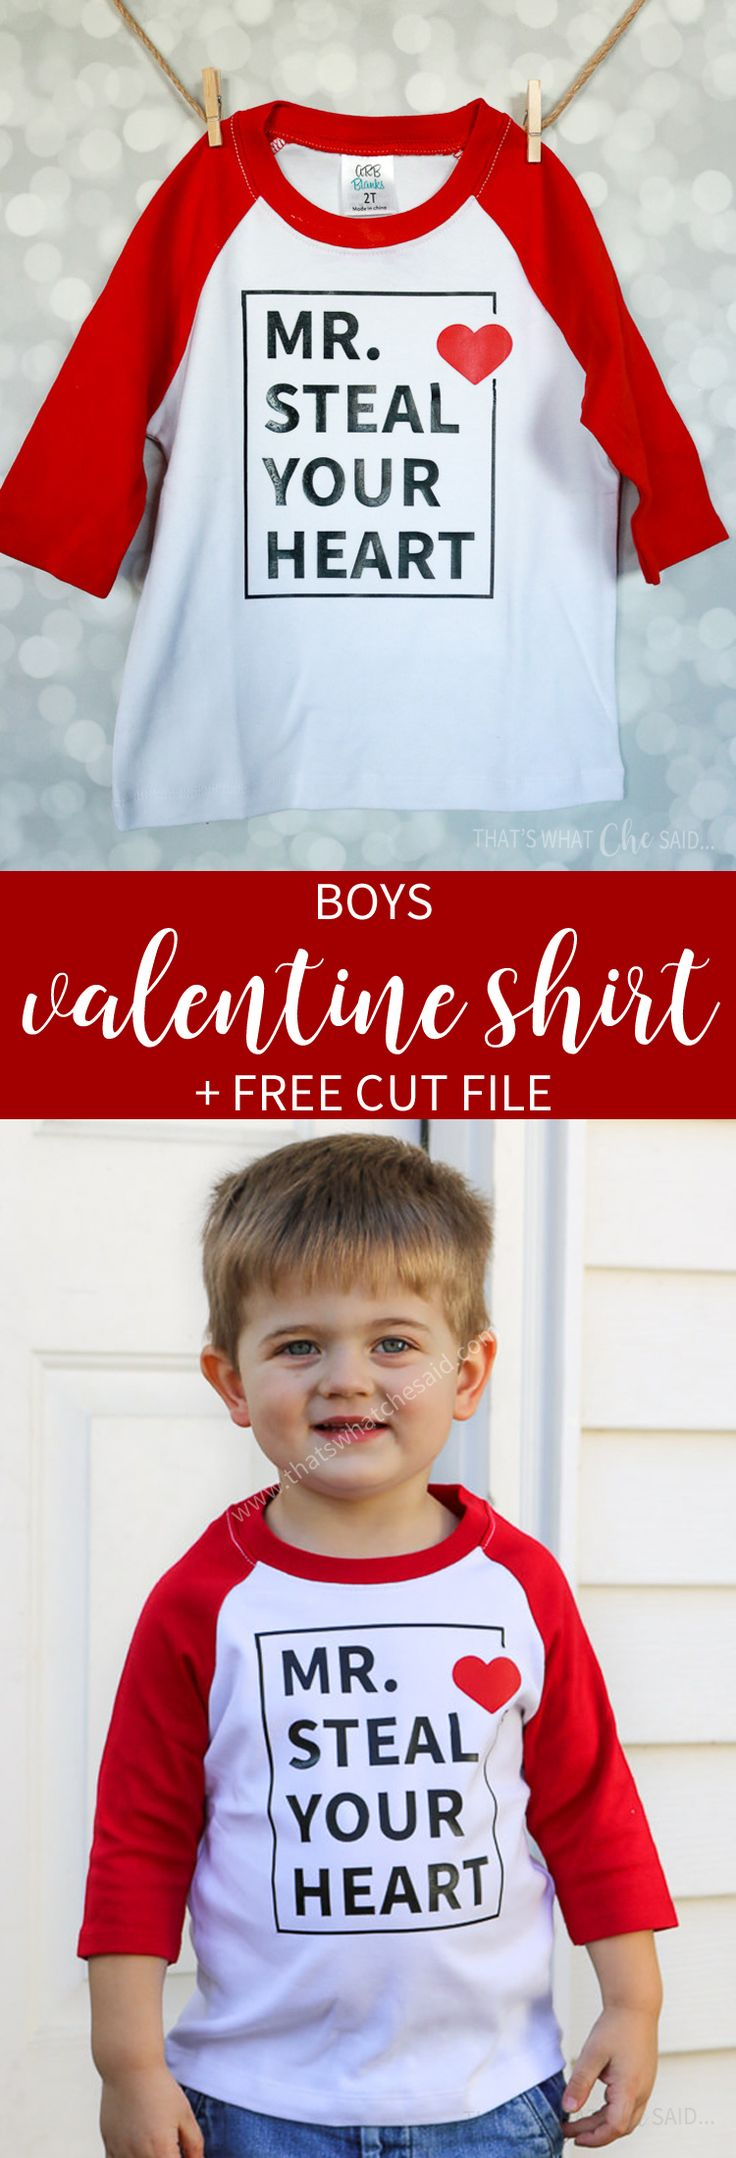 Boys Valentine Shirt Design + Free Cut File. A fun and cute valentines shirt idea for the boys!  As a boymom it's always a struggle to find cute boy stuff so I made my own and am sharing with you! #ad #CricutMade @Cricut